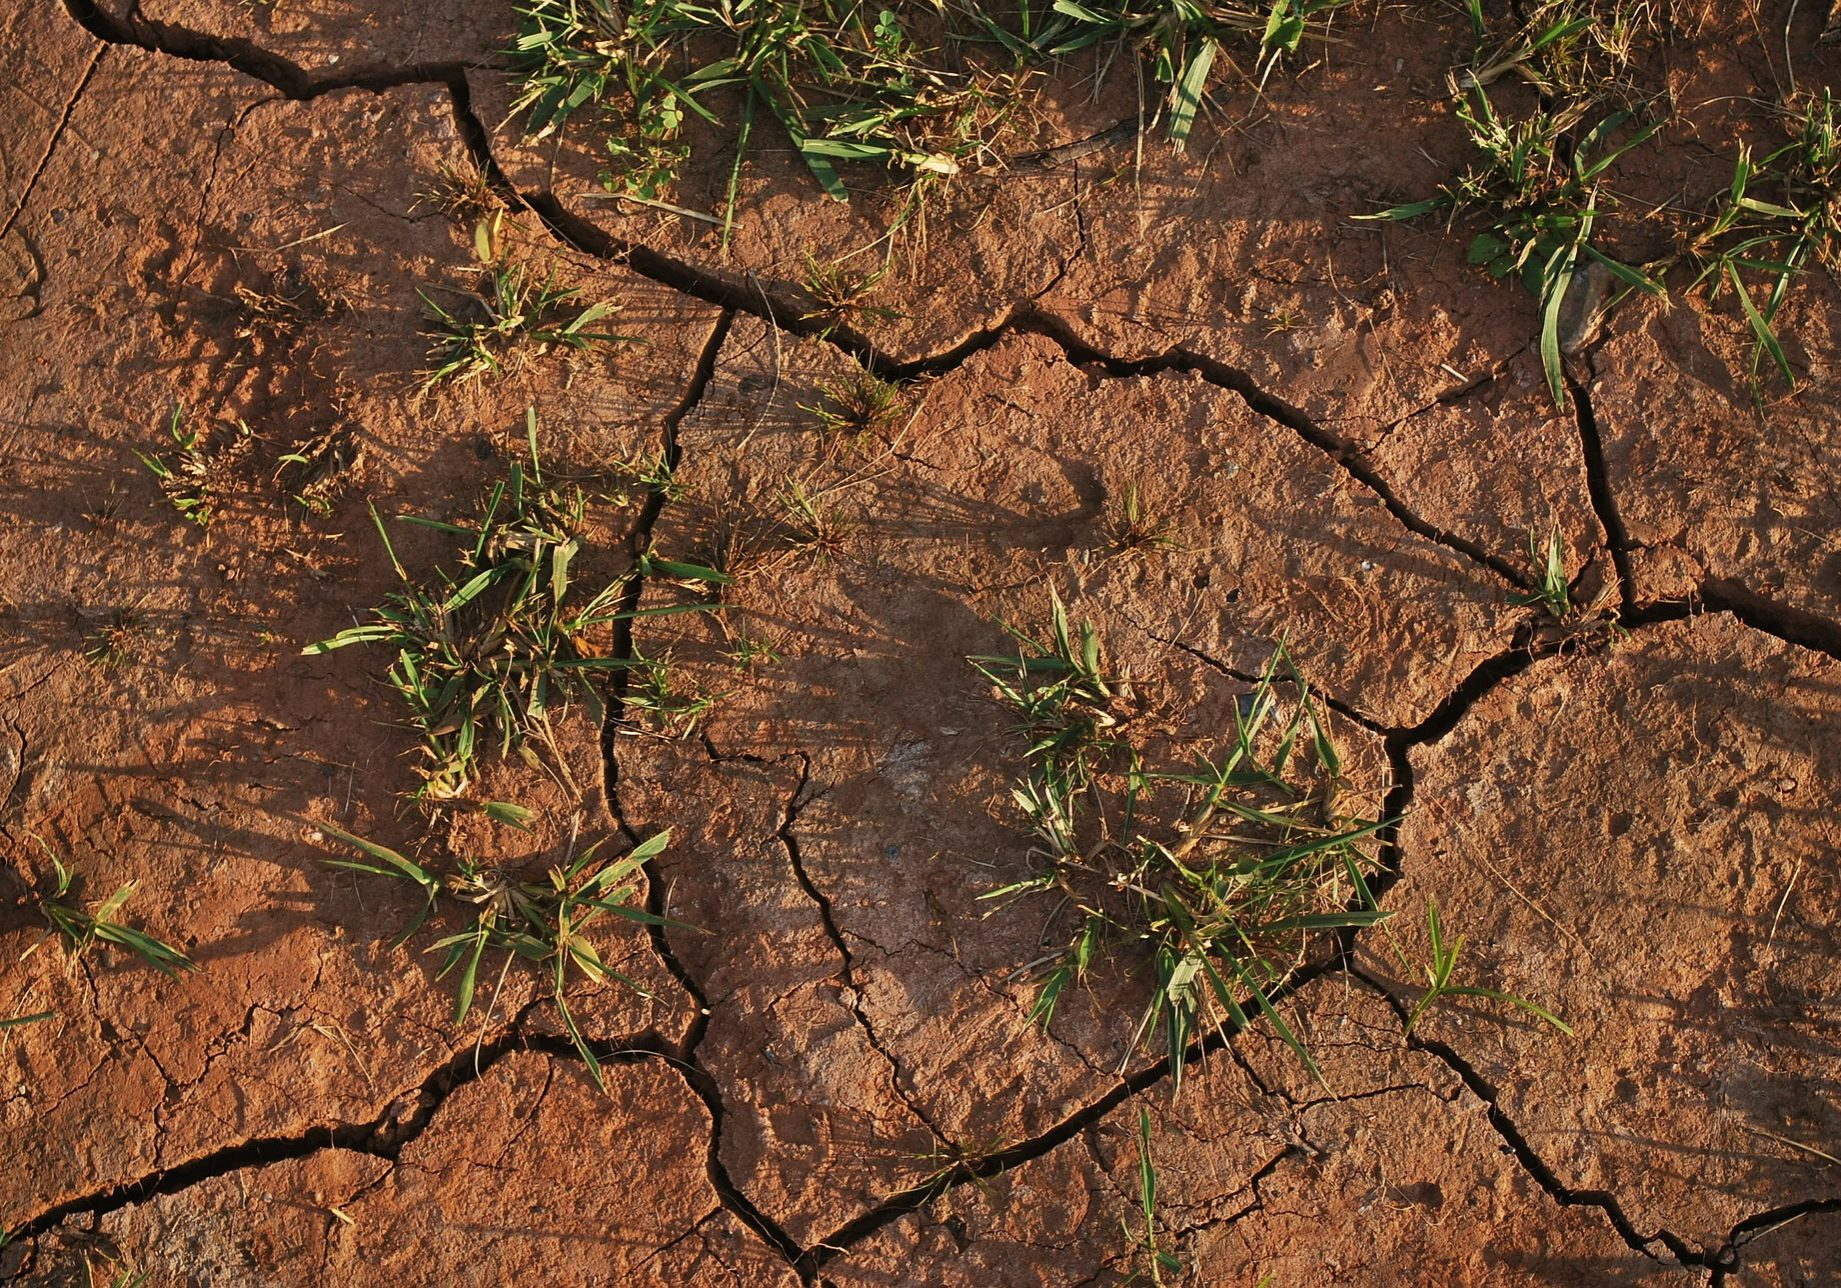 Dry cracked soil